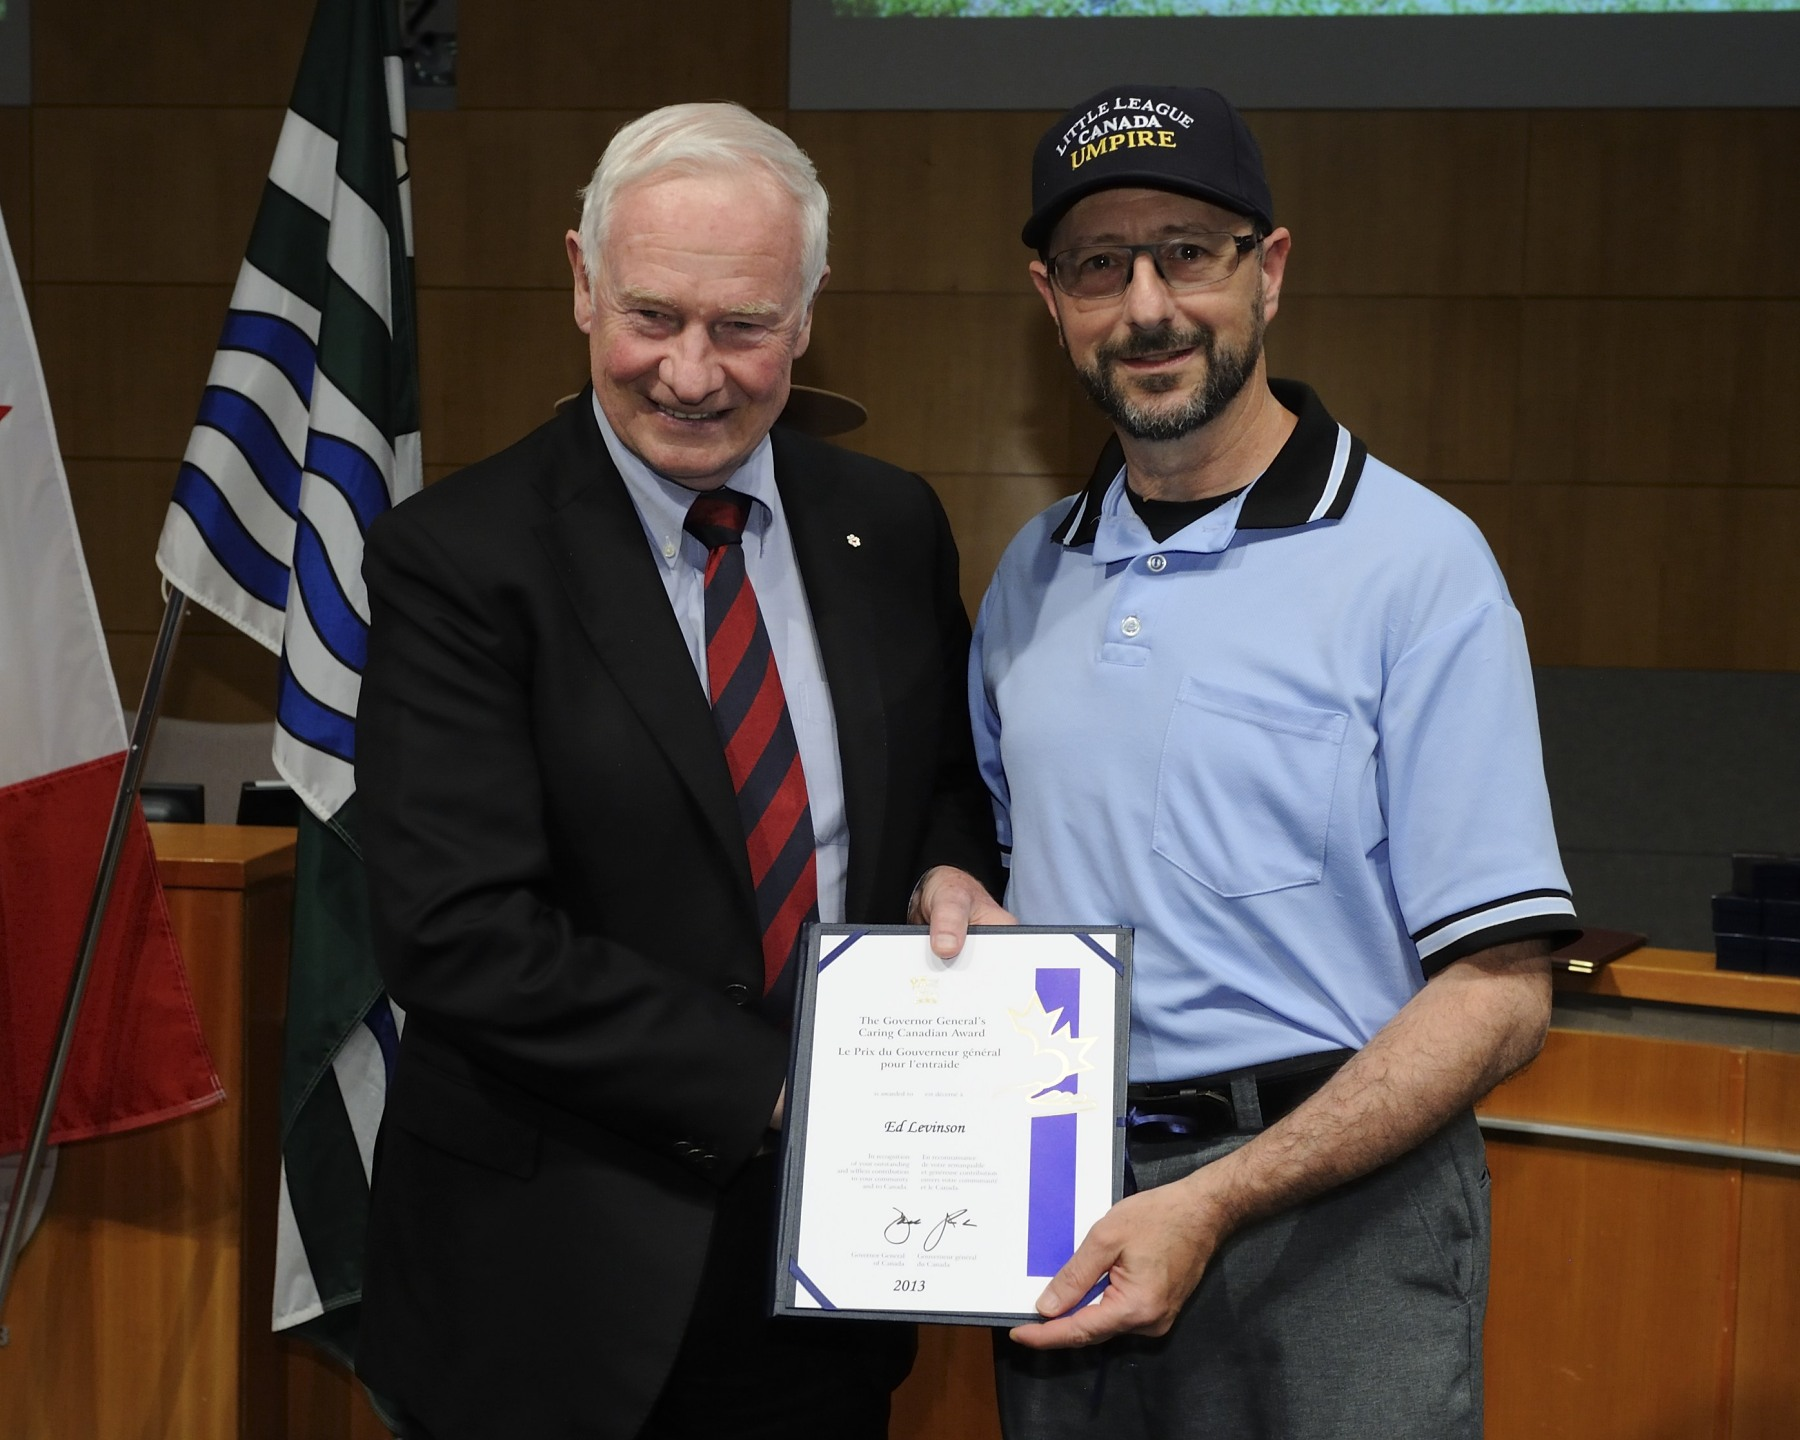 Mr. Ed Levinson, a Langley Little League umpire, received the Caring Canadian Award.